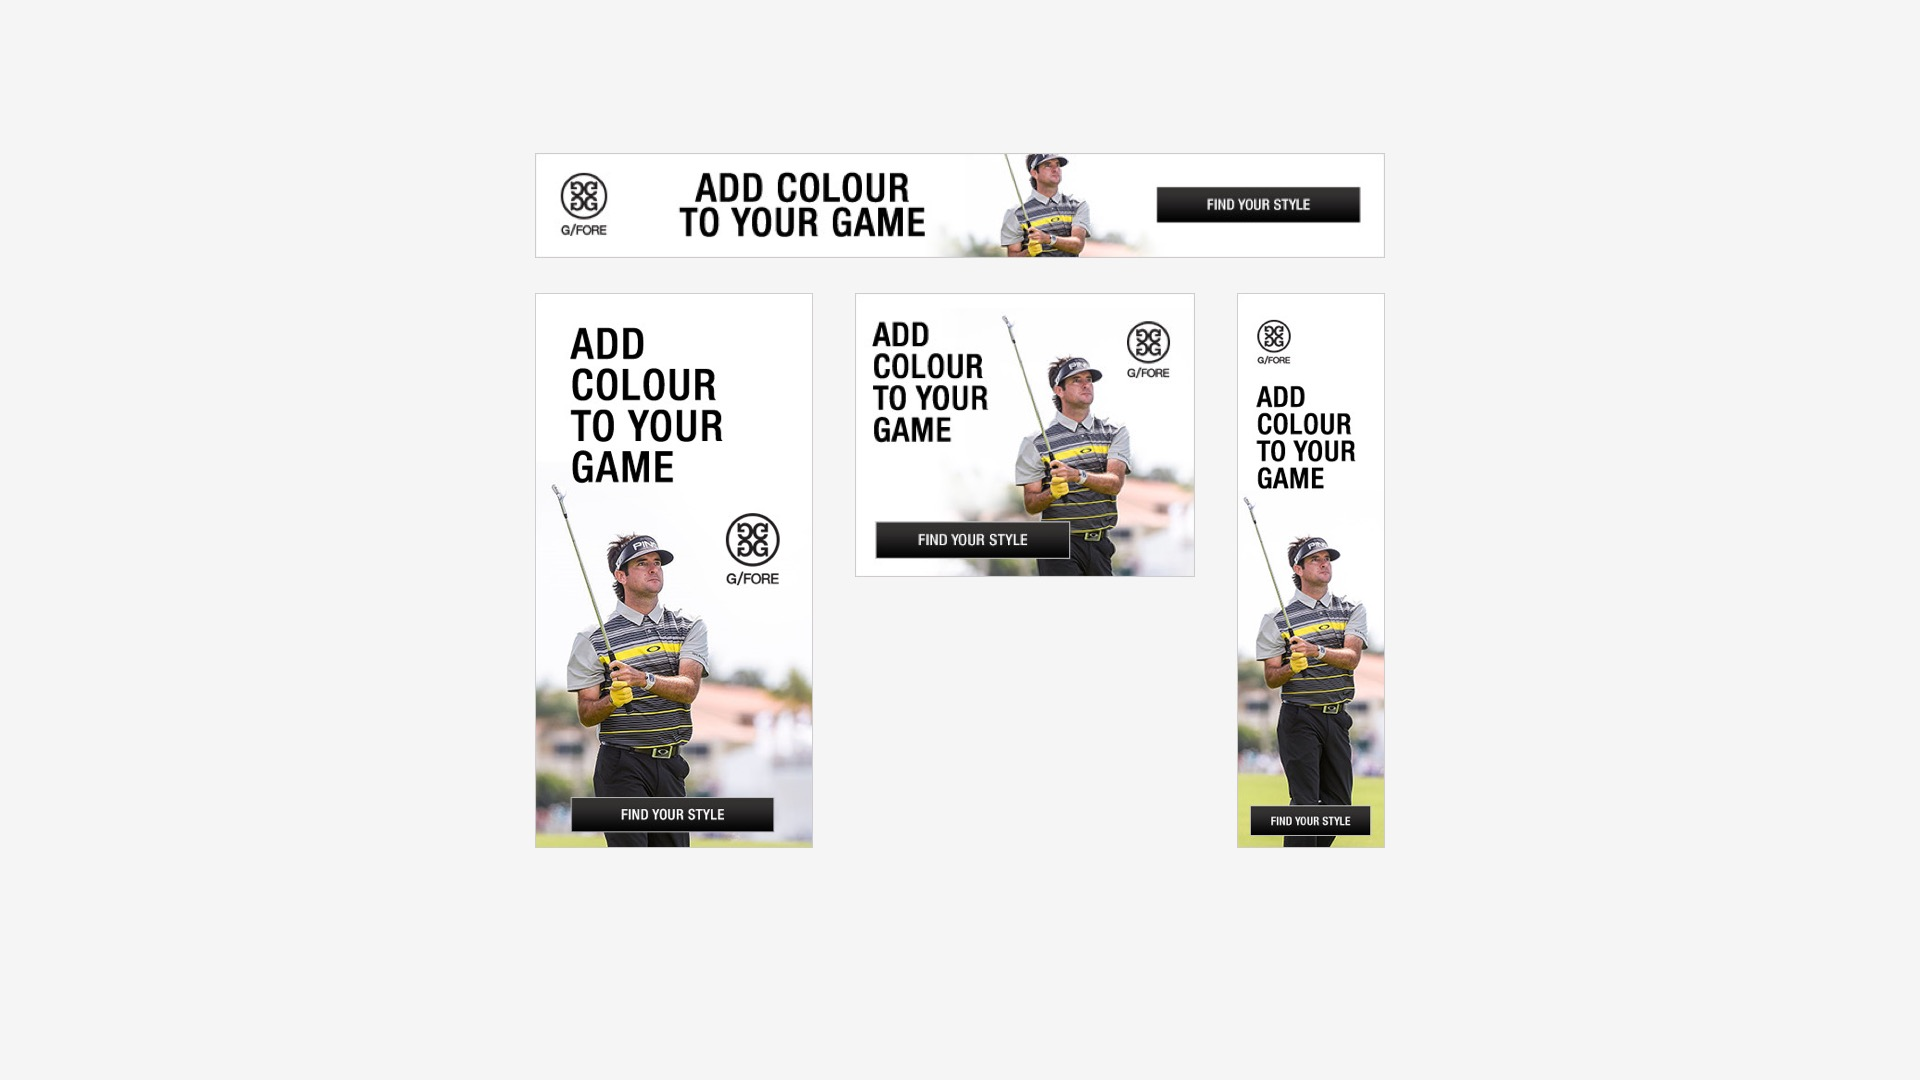 G/Fore: Web Banners